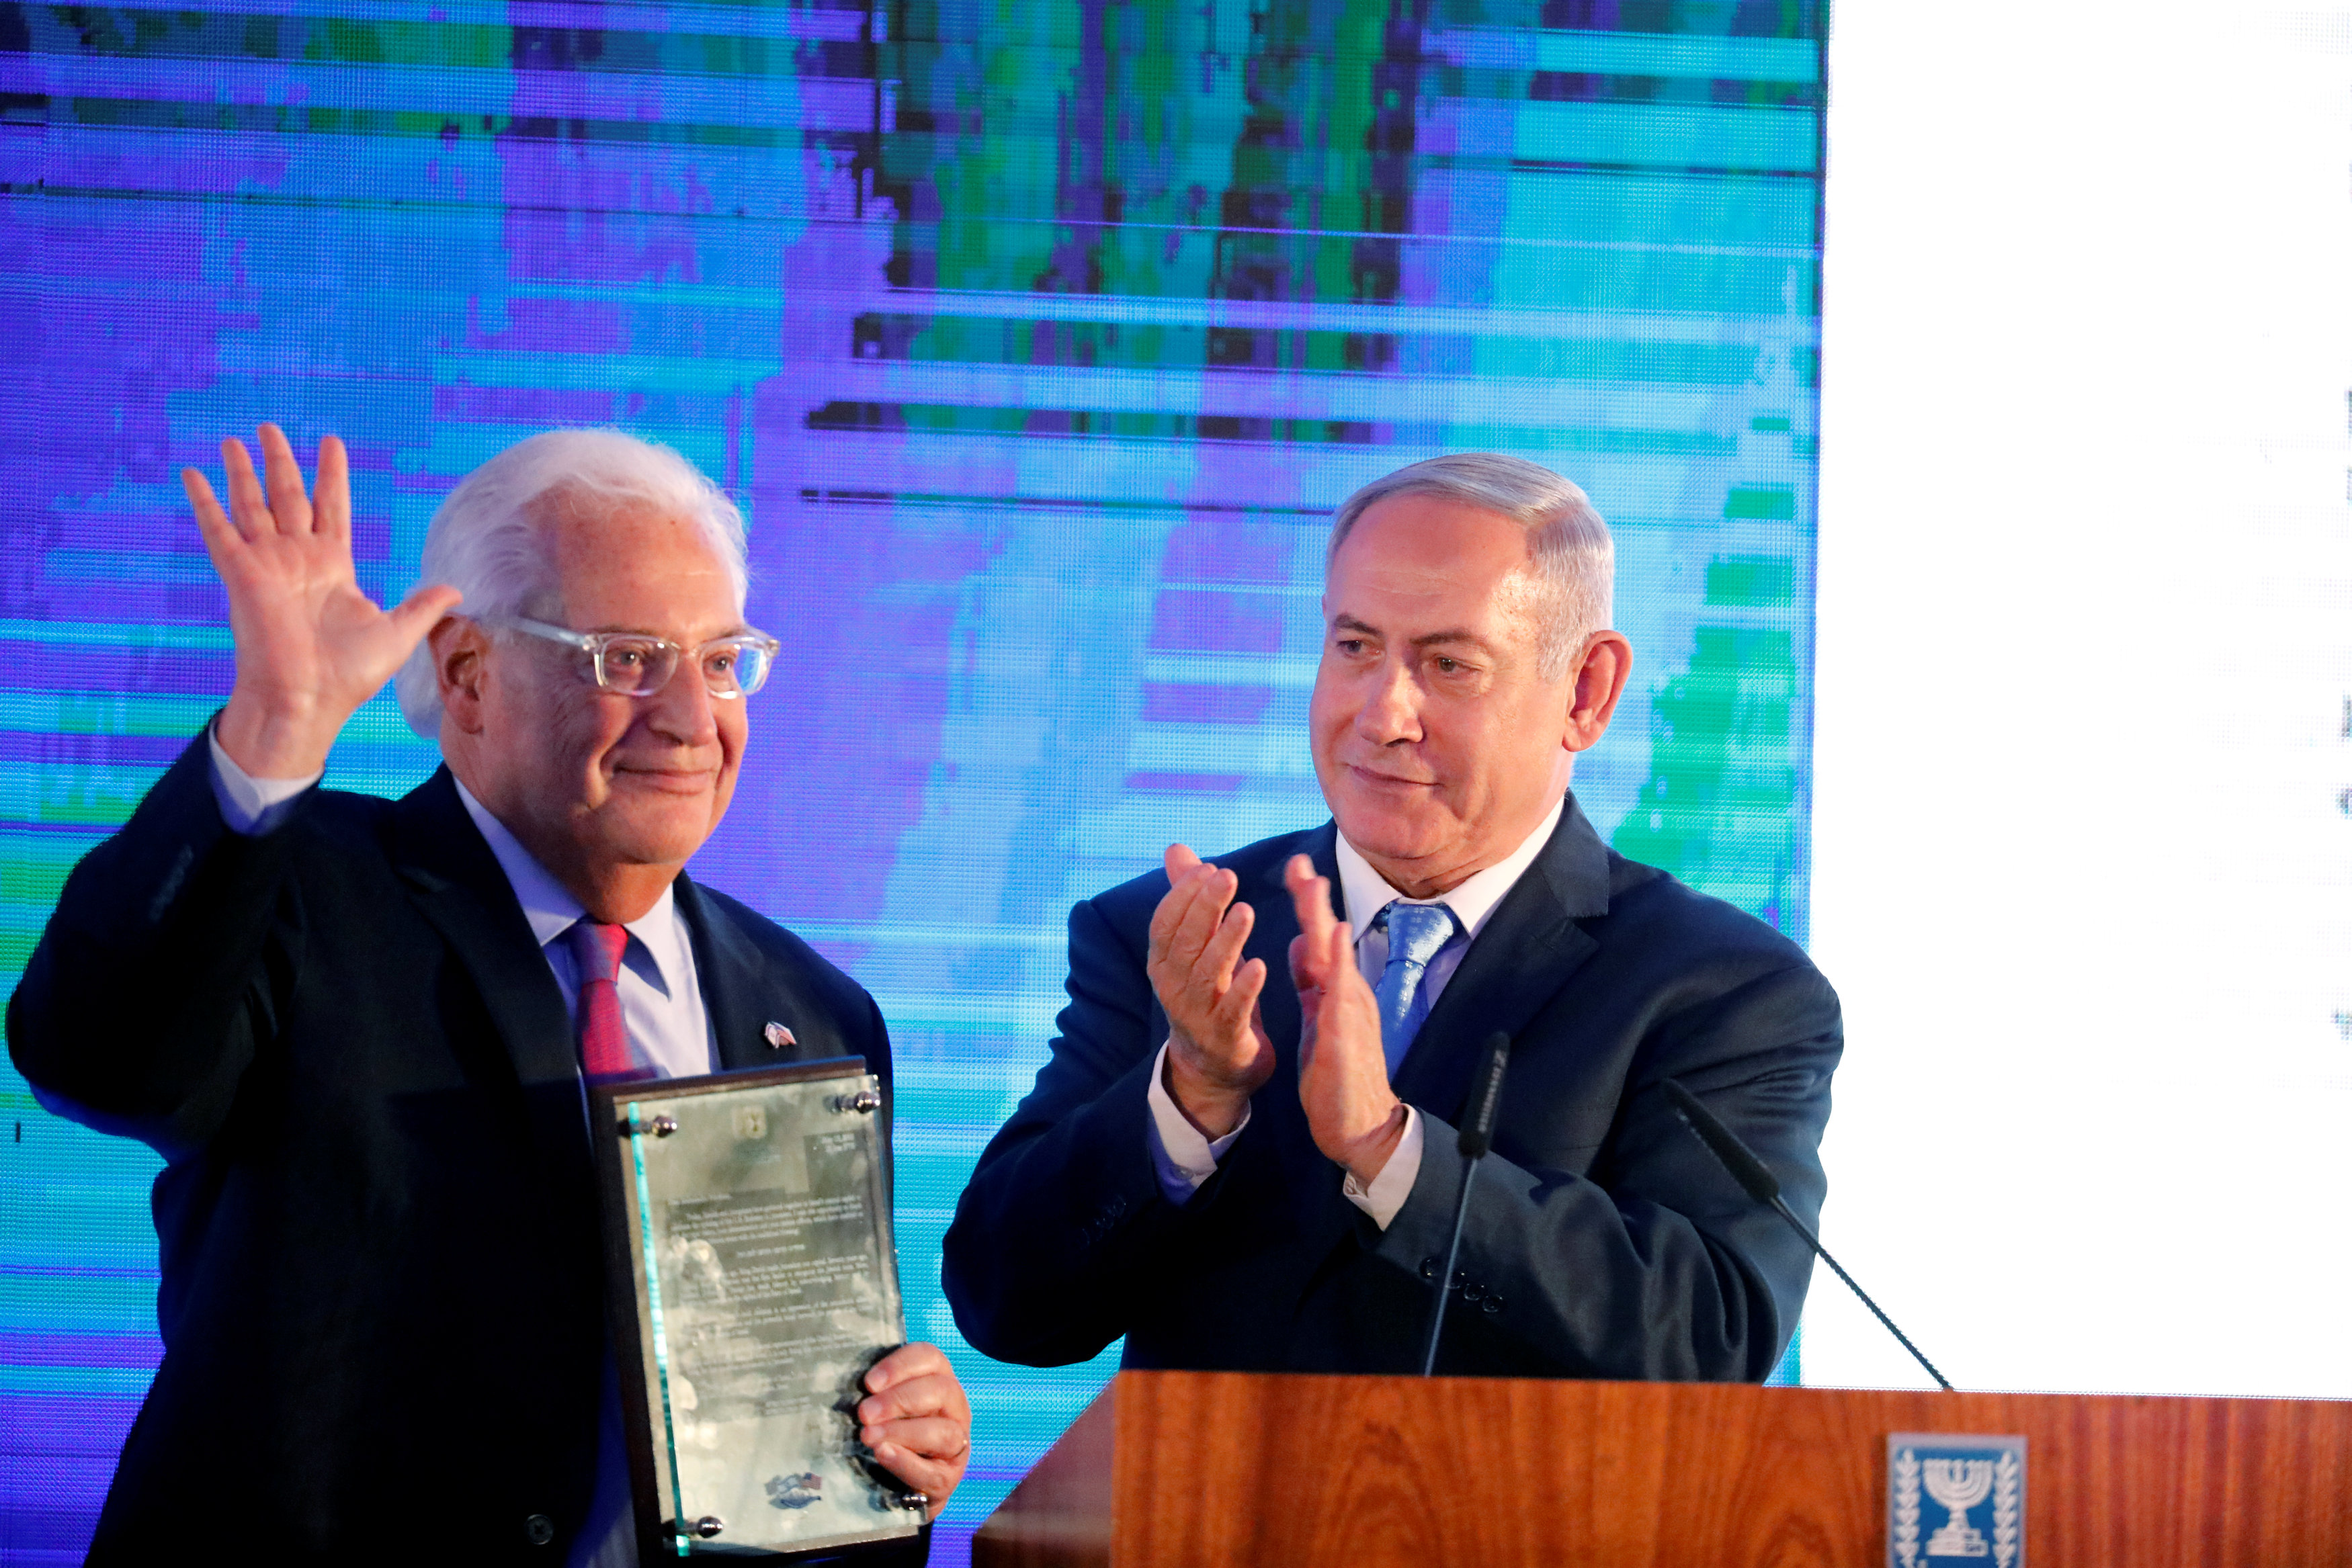 Israeli Prime Minister Benjamin Netanyahu claps after handing U.S. Ambassador to Israel David Friedman a letter of appreciation, during a reception held at the Israeli Ministry of Foreign Affairs in Jerusalem, ahead of the moving of the U.S. embassy to Jerusalem, May 13, 2018. REUTERS/Amir Cohen